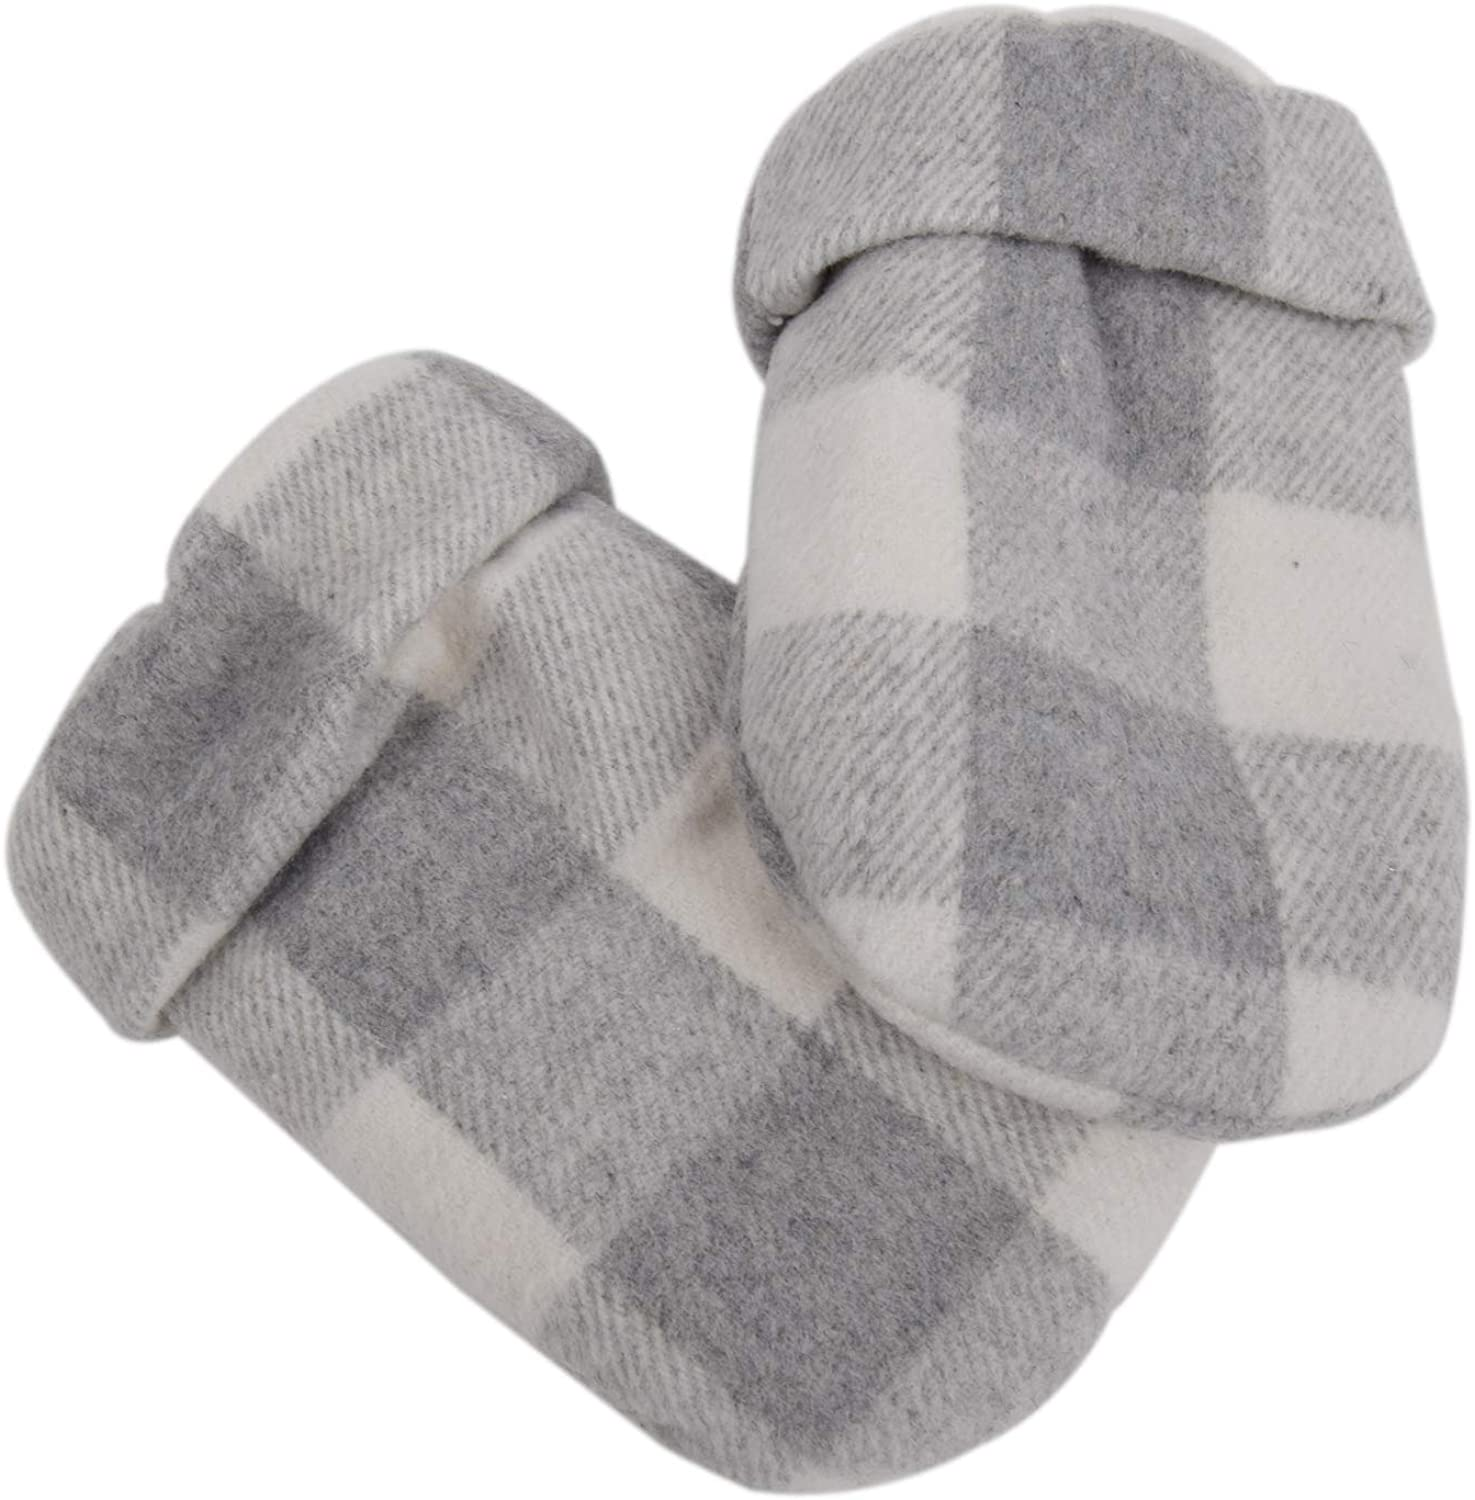 Gireshome Cabin C0zy White and Black Buffalo Check Lined with Sherpa Mitts